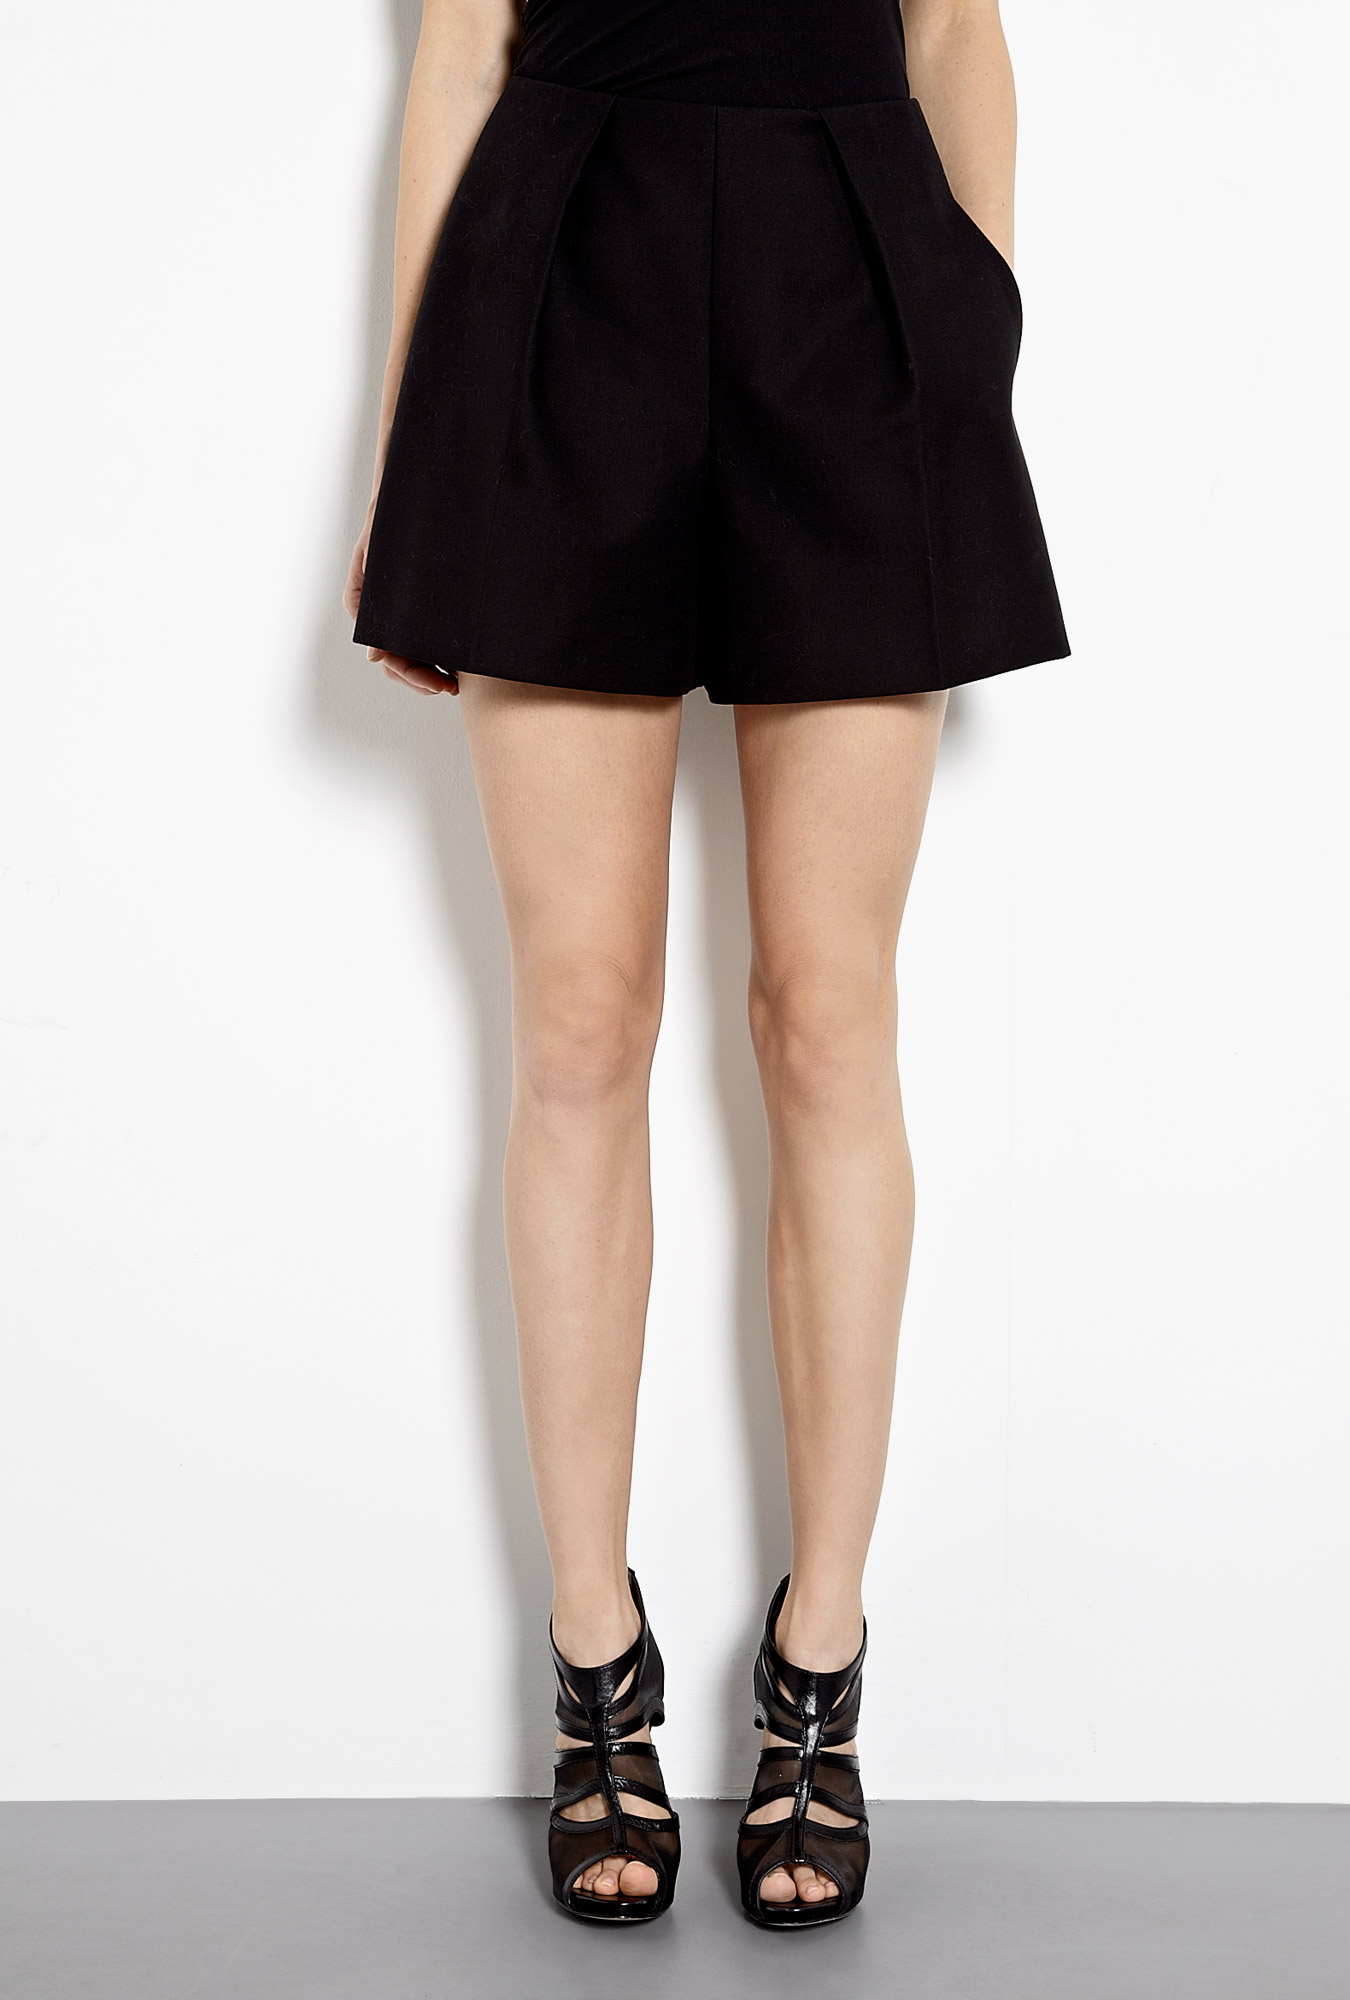 Black cotton twill high waisted shorts by carven